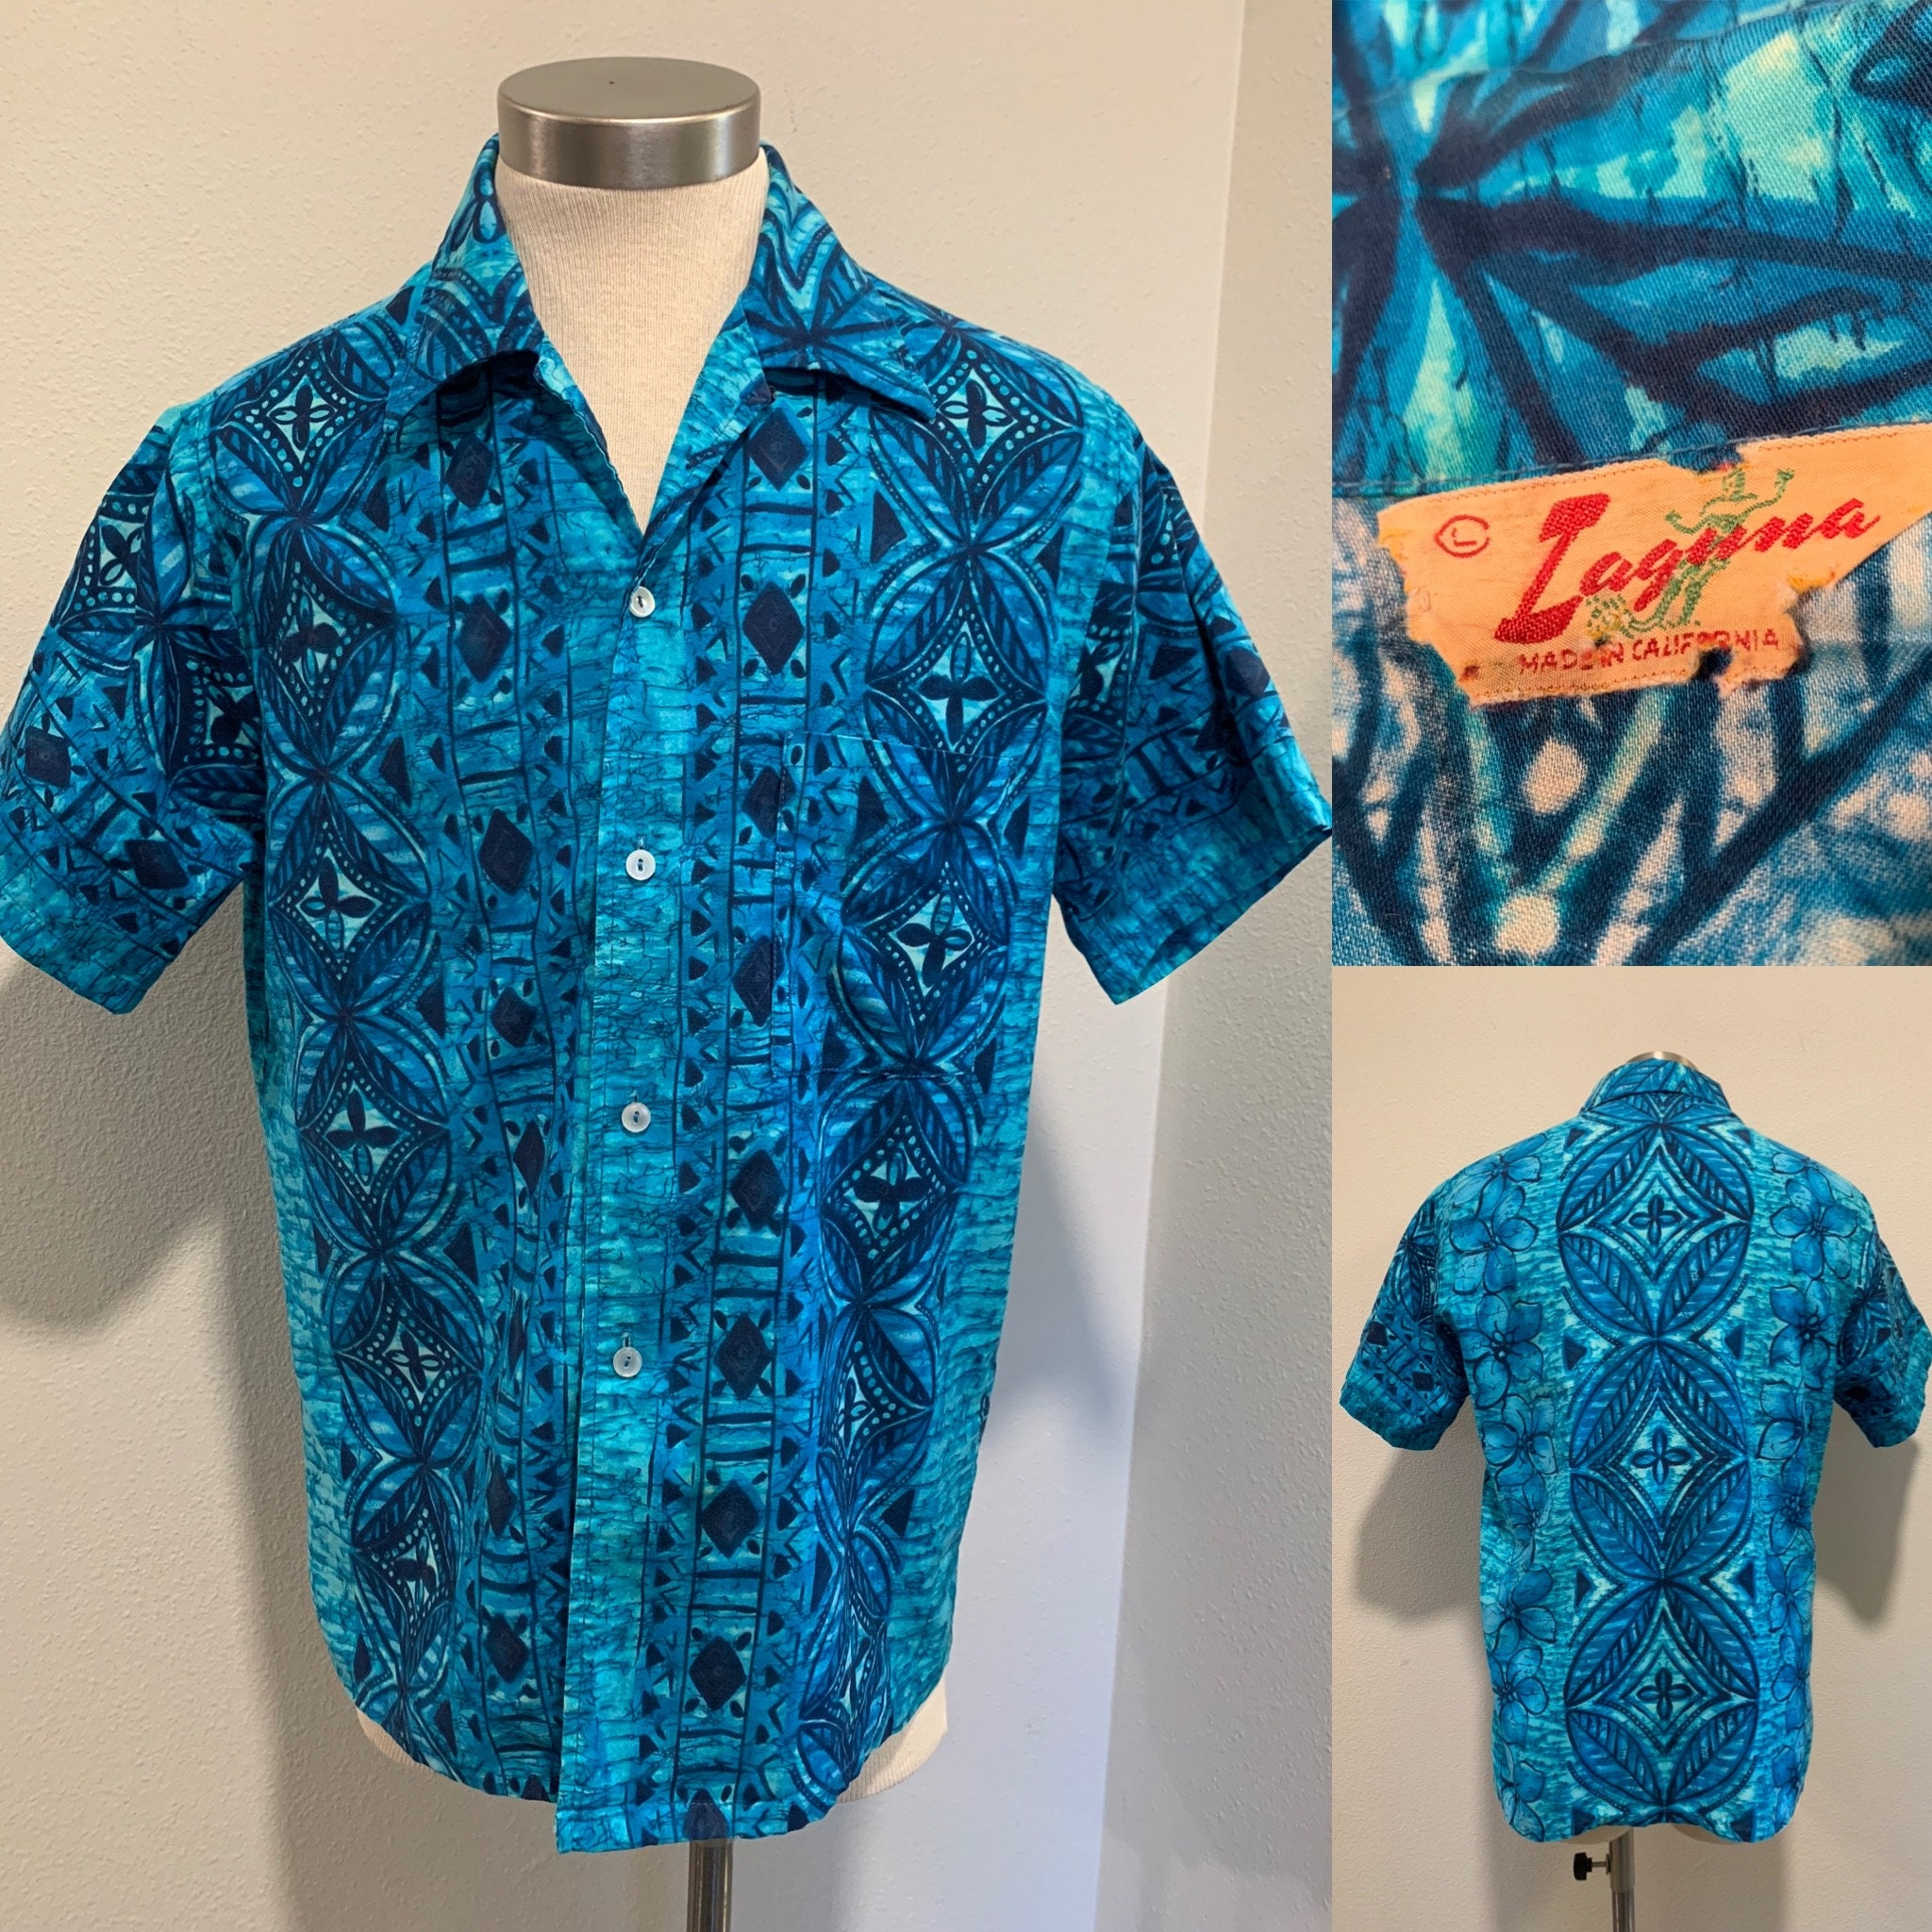 1970s Men's Shirt Styles – Vintage 70s Shirts for Guys 1970s Vintage Mens Shirt  Surf Shirt, Blue Printed Cotton, Label Says Laguna, Made in California, Sz L, Great Quality  Condition $75.00 AT vintagedancer.com